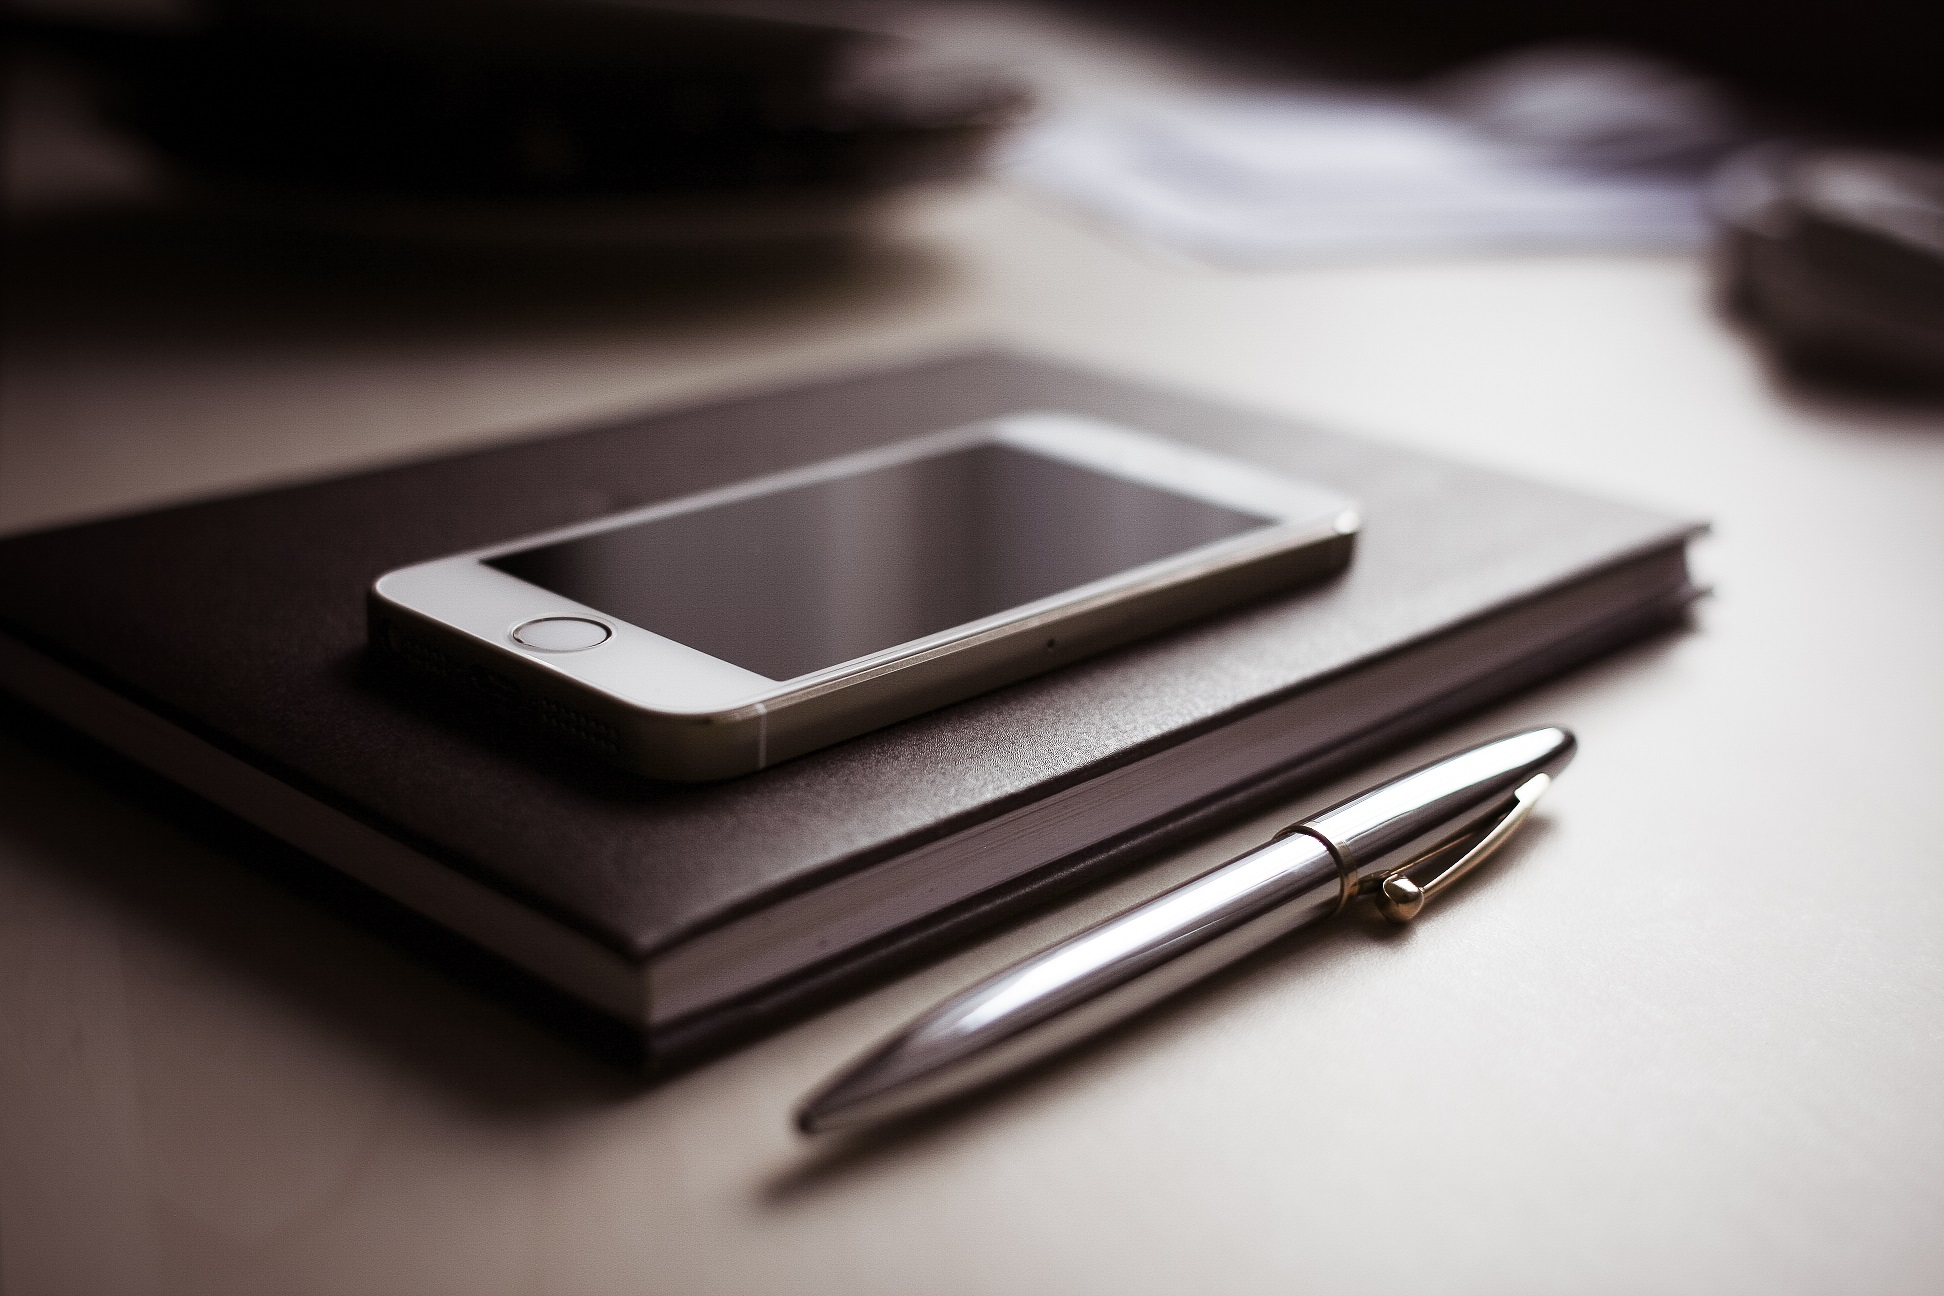 diary-with-new-iphone-5s-and-pen-small-com